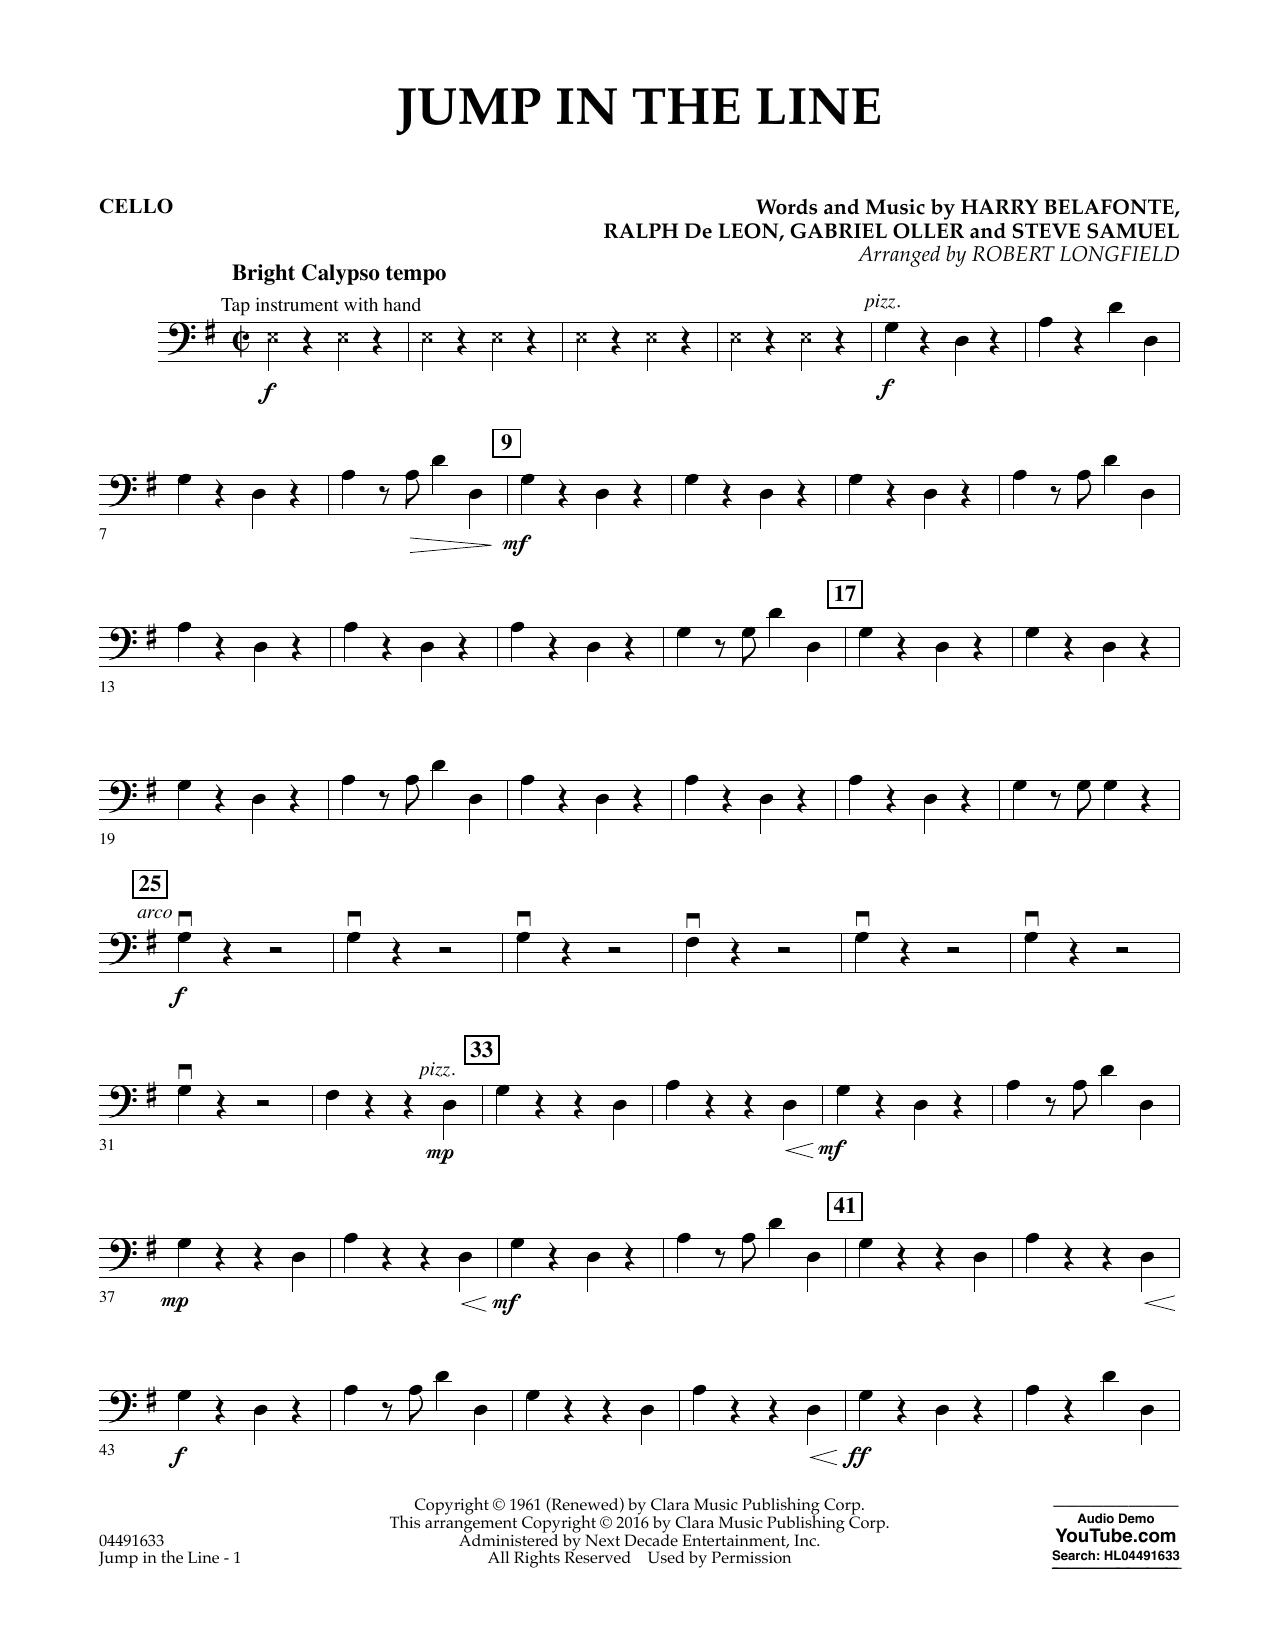 Download Robert Longfield 'Jump in the Line - Cello' Digital Sheet Music Notes & Chords and start playing in minutes